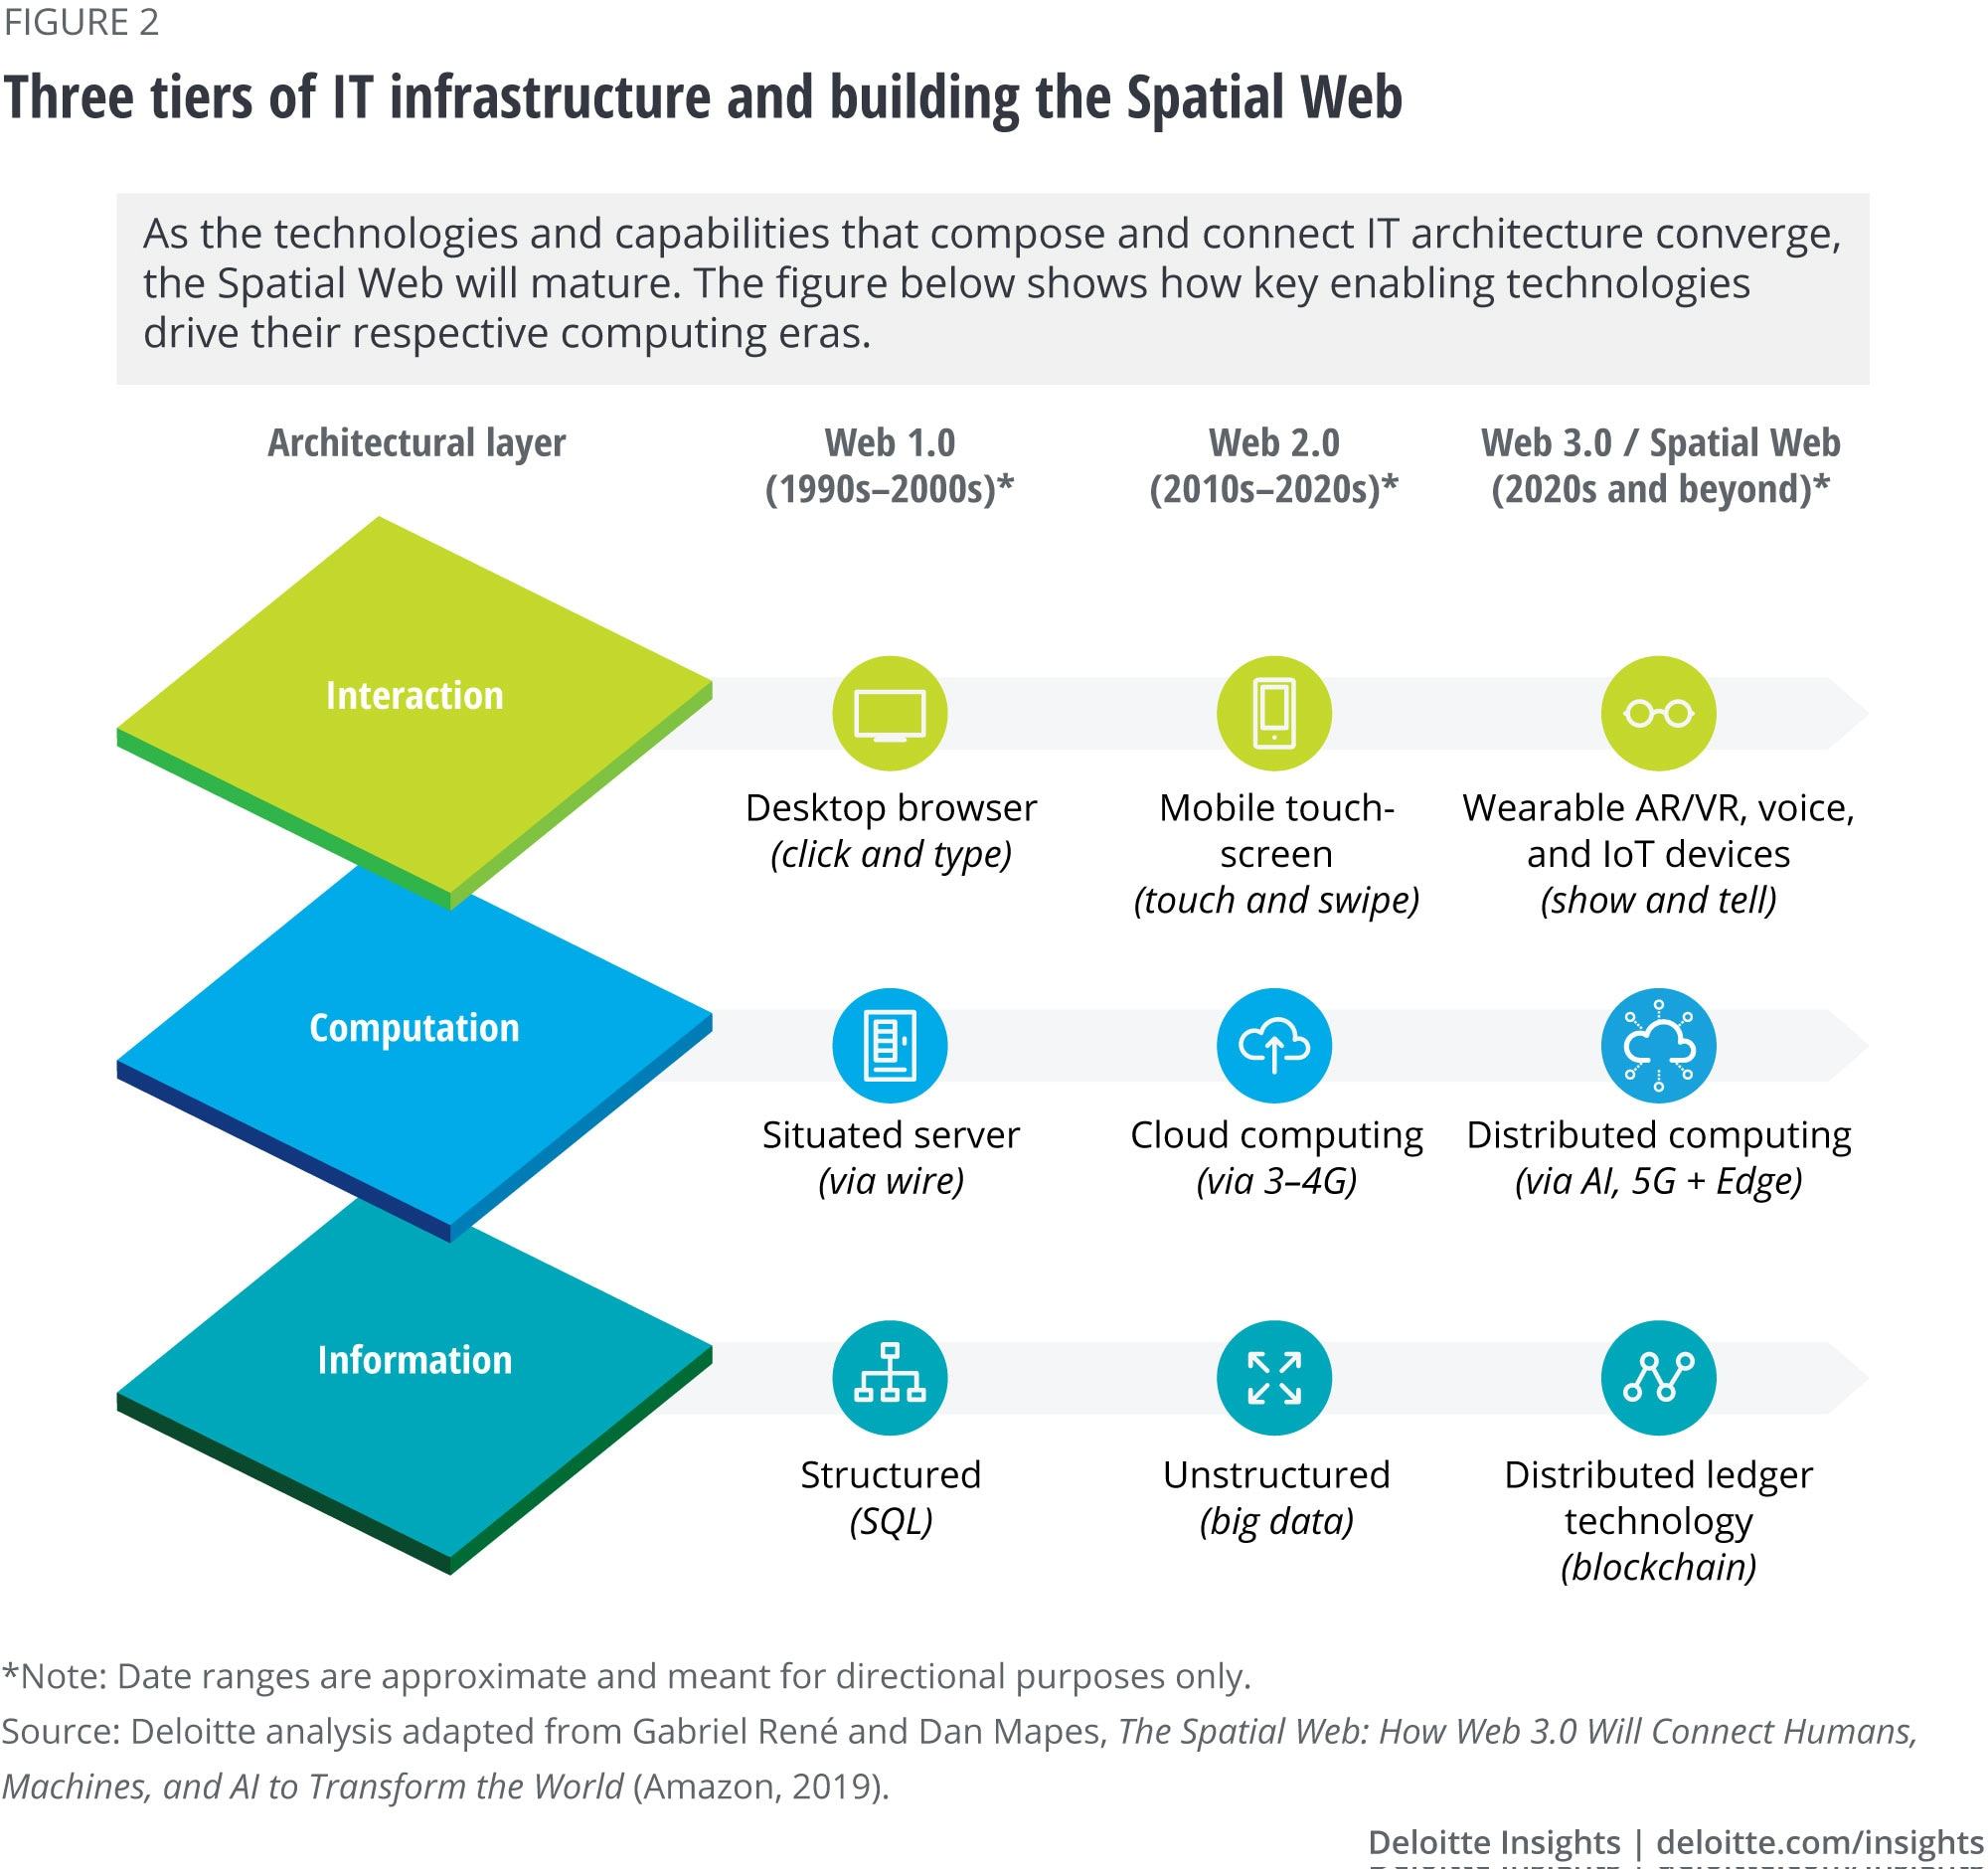 Three tiers of IT infrastructure and building the Spatial Web